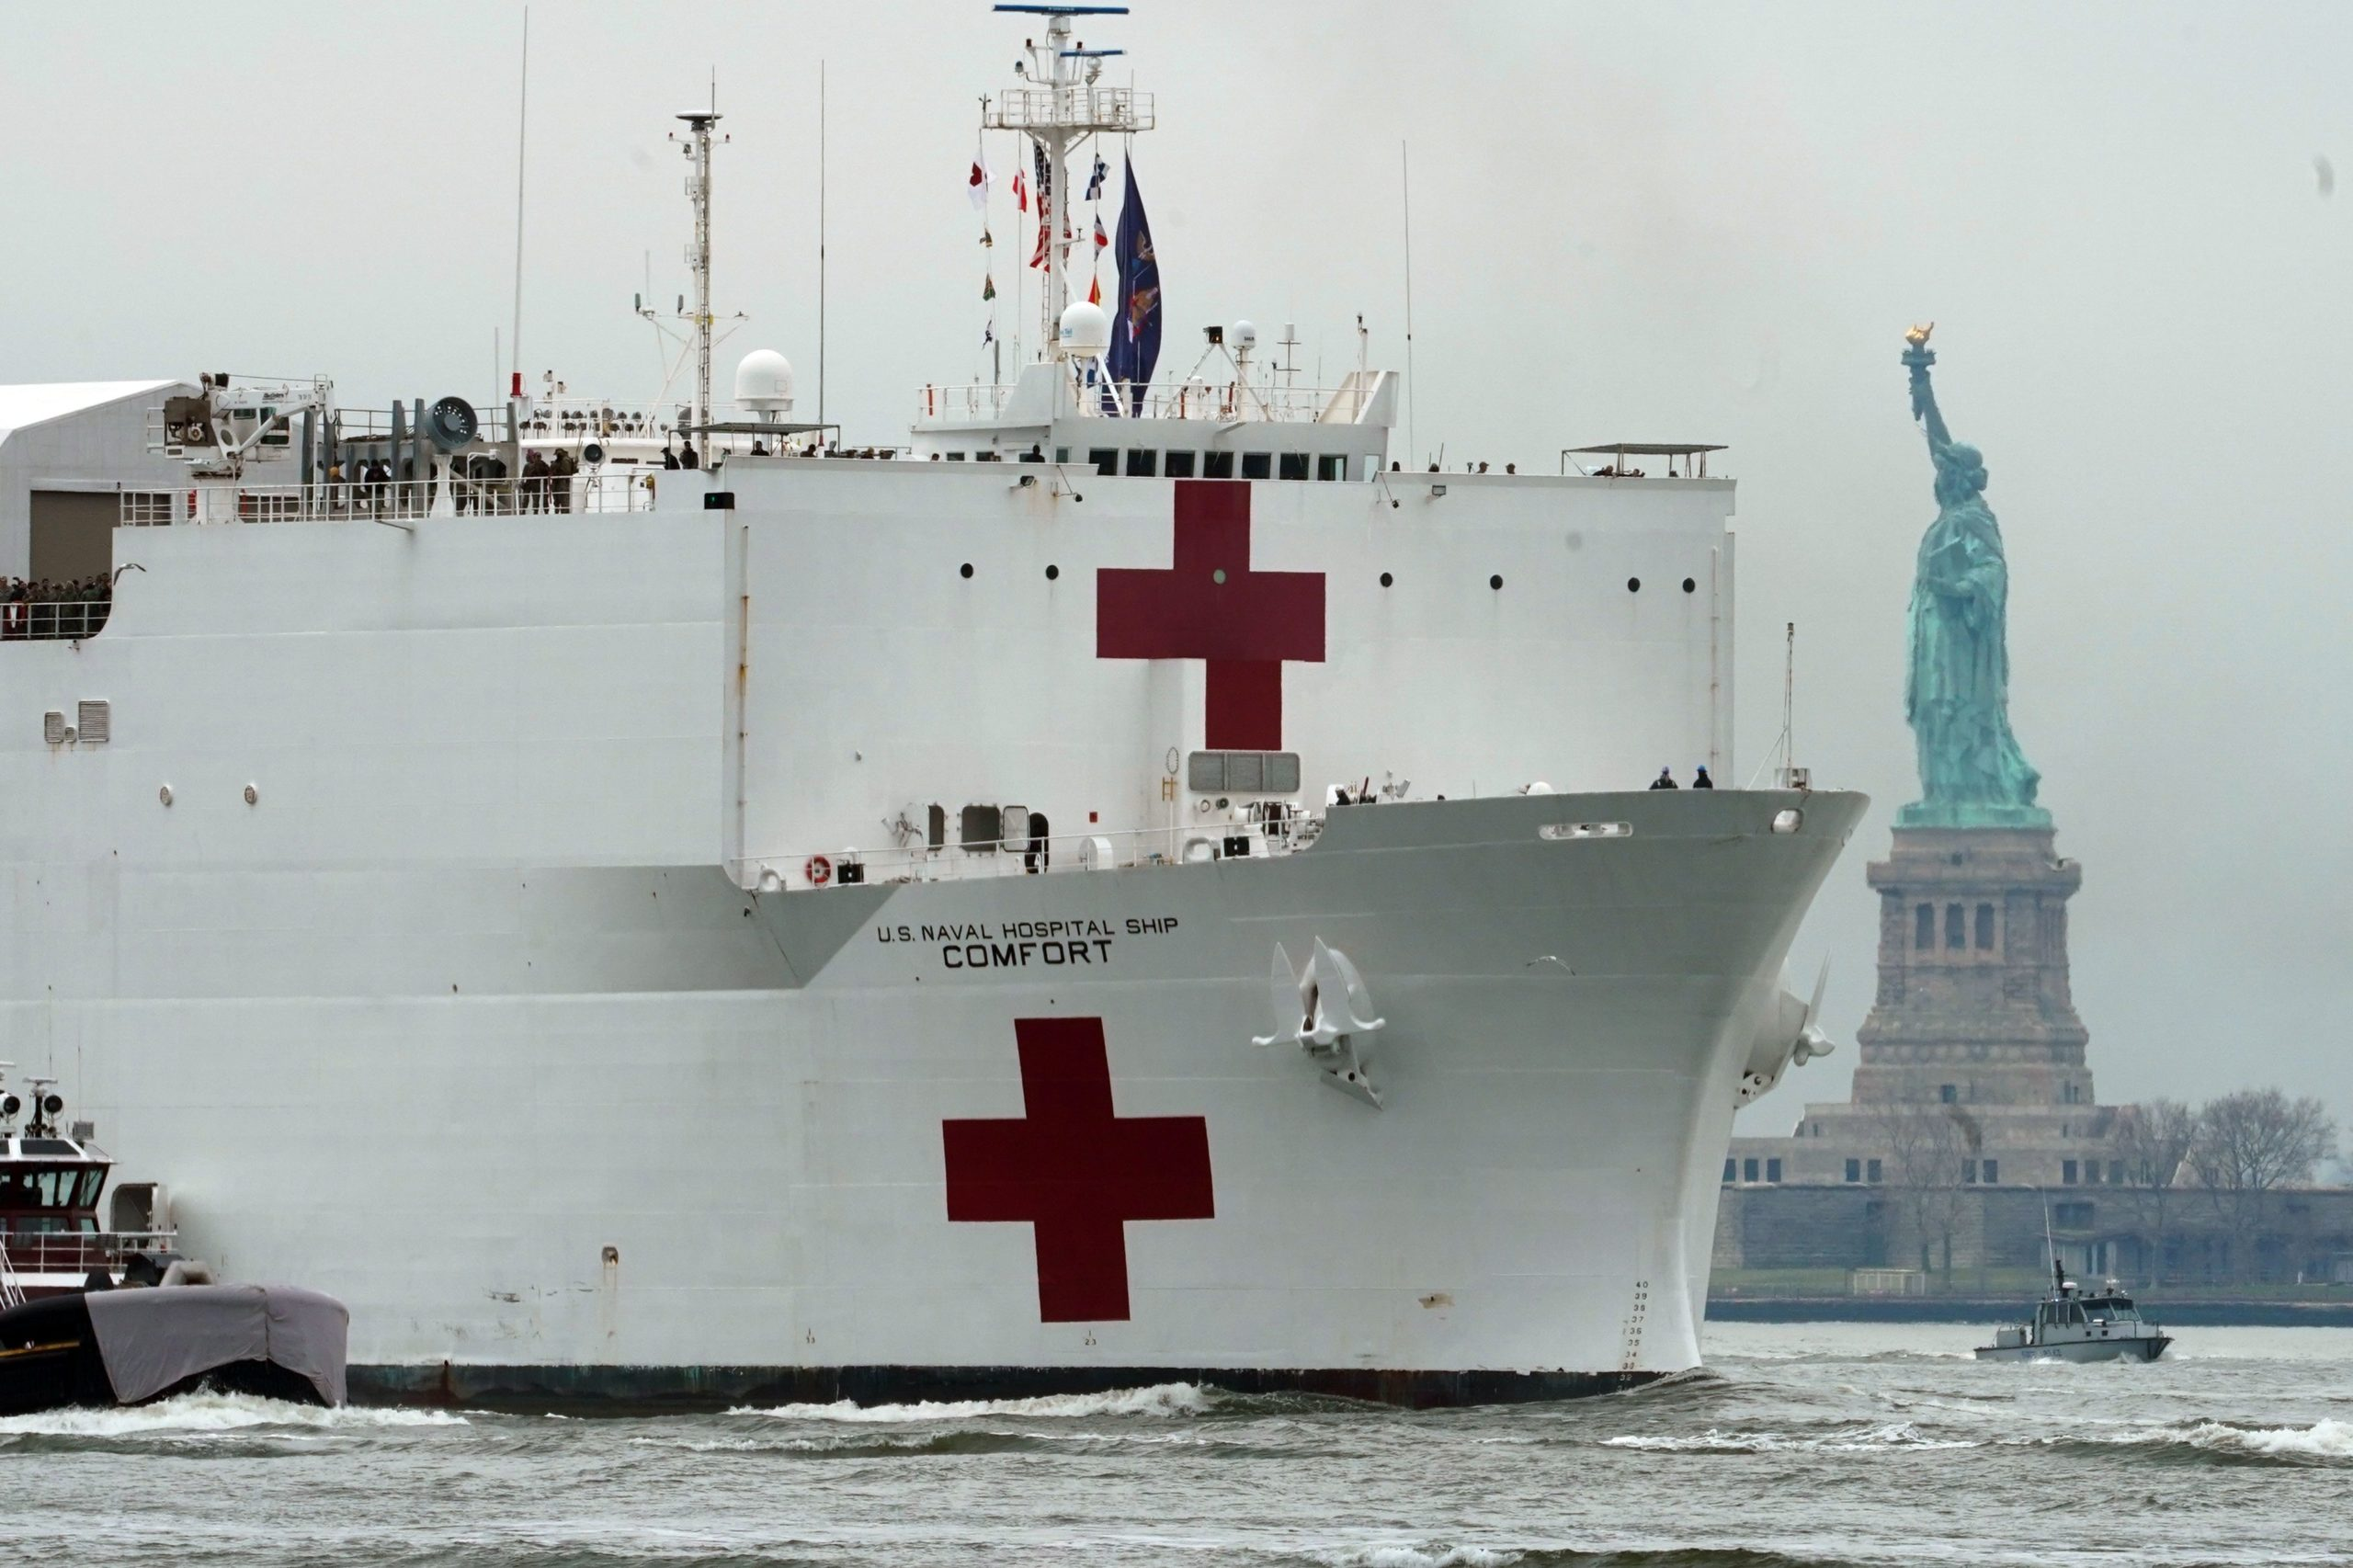 The USNS Comfort medical ship moves up the Hudson River past the Statue of Liberty as it arrives on March 30, 2020 in New York. - A military hospital ship arrived in New York Monday as America's coronavirus epicenter prepares to fight the peak of the pandemic that has killed over 2,500 people across the US. The navy's 1,000-bed USNS Comfort entered a Manhattan pier around 10:45 am (1545 GMT). It will treat non-virus-related patients, helping to ease the burden of hospitals overwhelmed by the crisis. (Photo by Bryan R. Smith / AFP) (Photo by BRYAN R. SMITH/AFP via Getty Images)